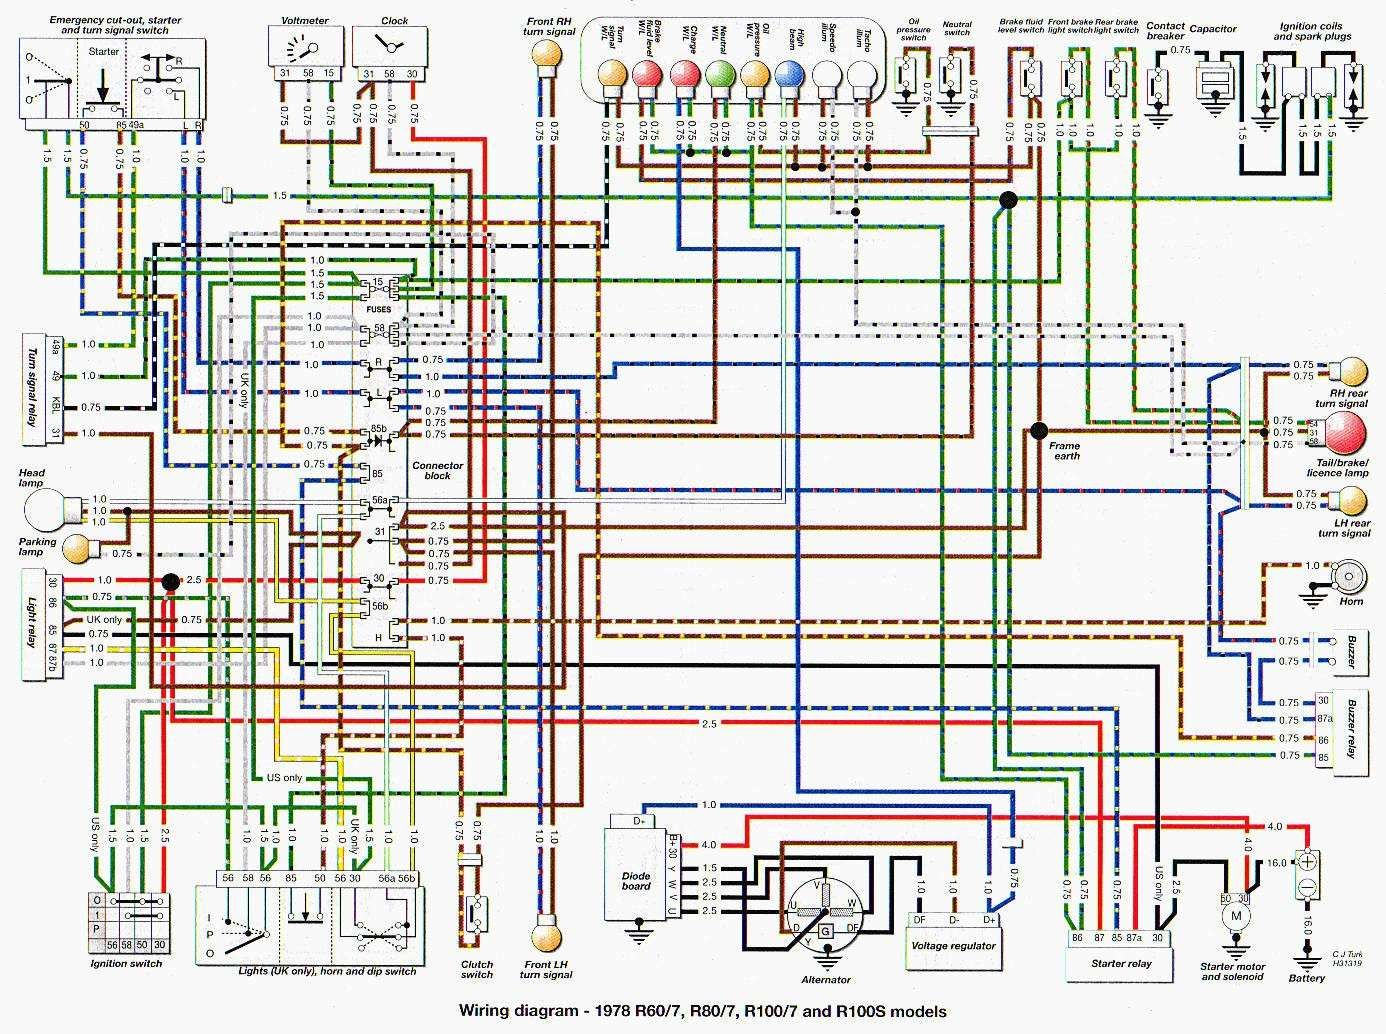 Continental Wiring Diagram On Isuzu Npr Rear Light Wiring Diagram